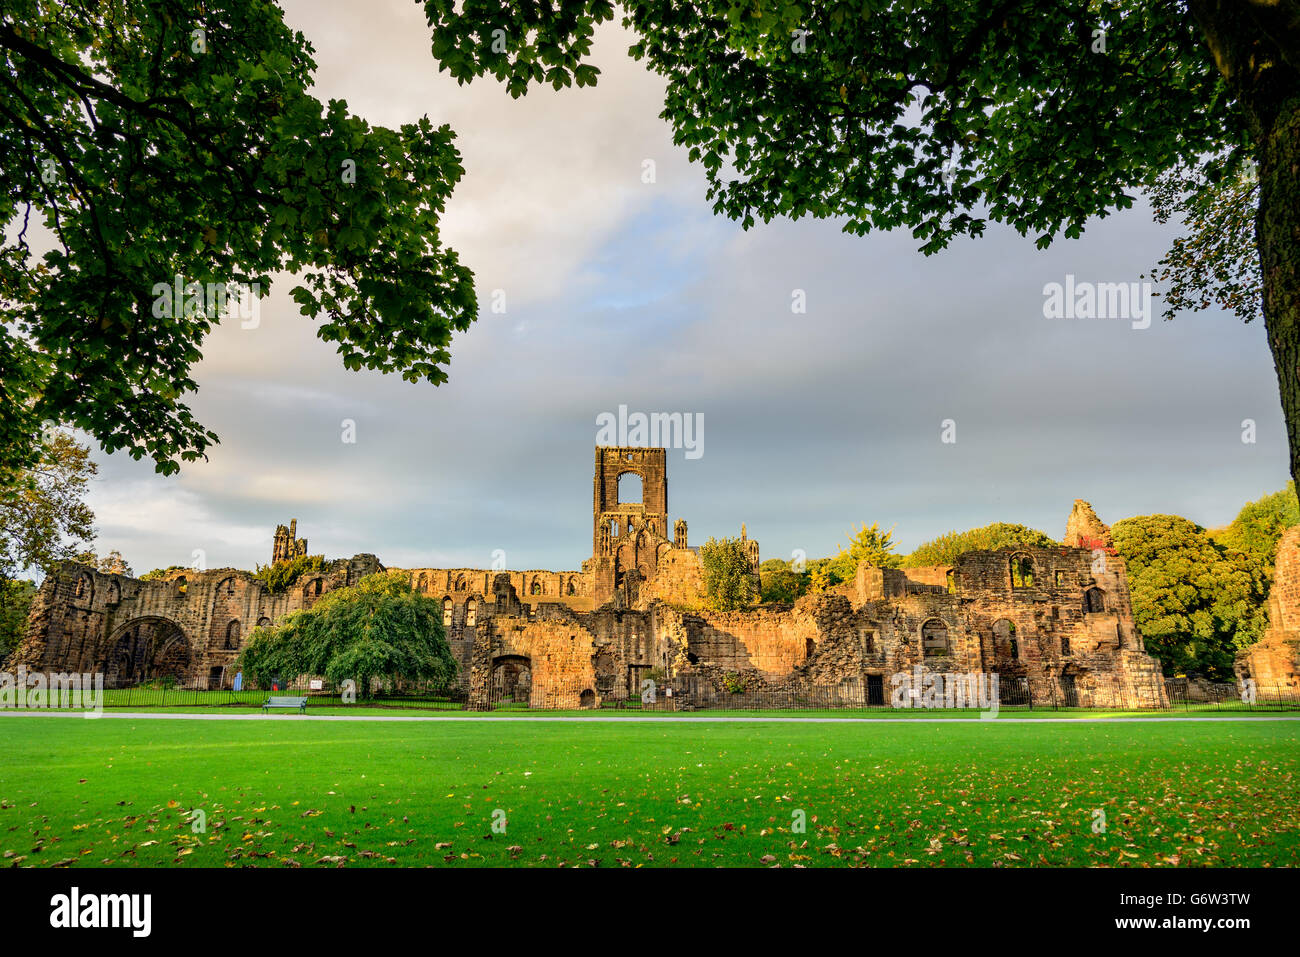 Kirkstall Abbey is a ruined Cistercian monastery in Kirkstall north-west of Leeds city center in West Yorkshire, - Stock Image